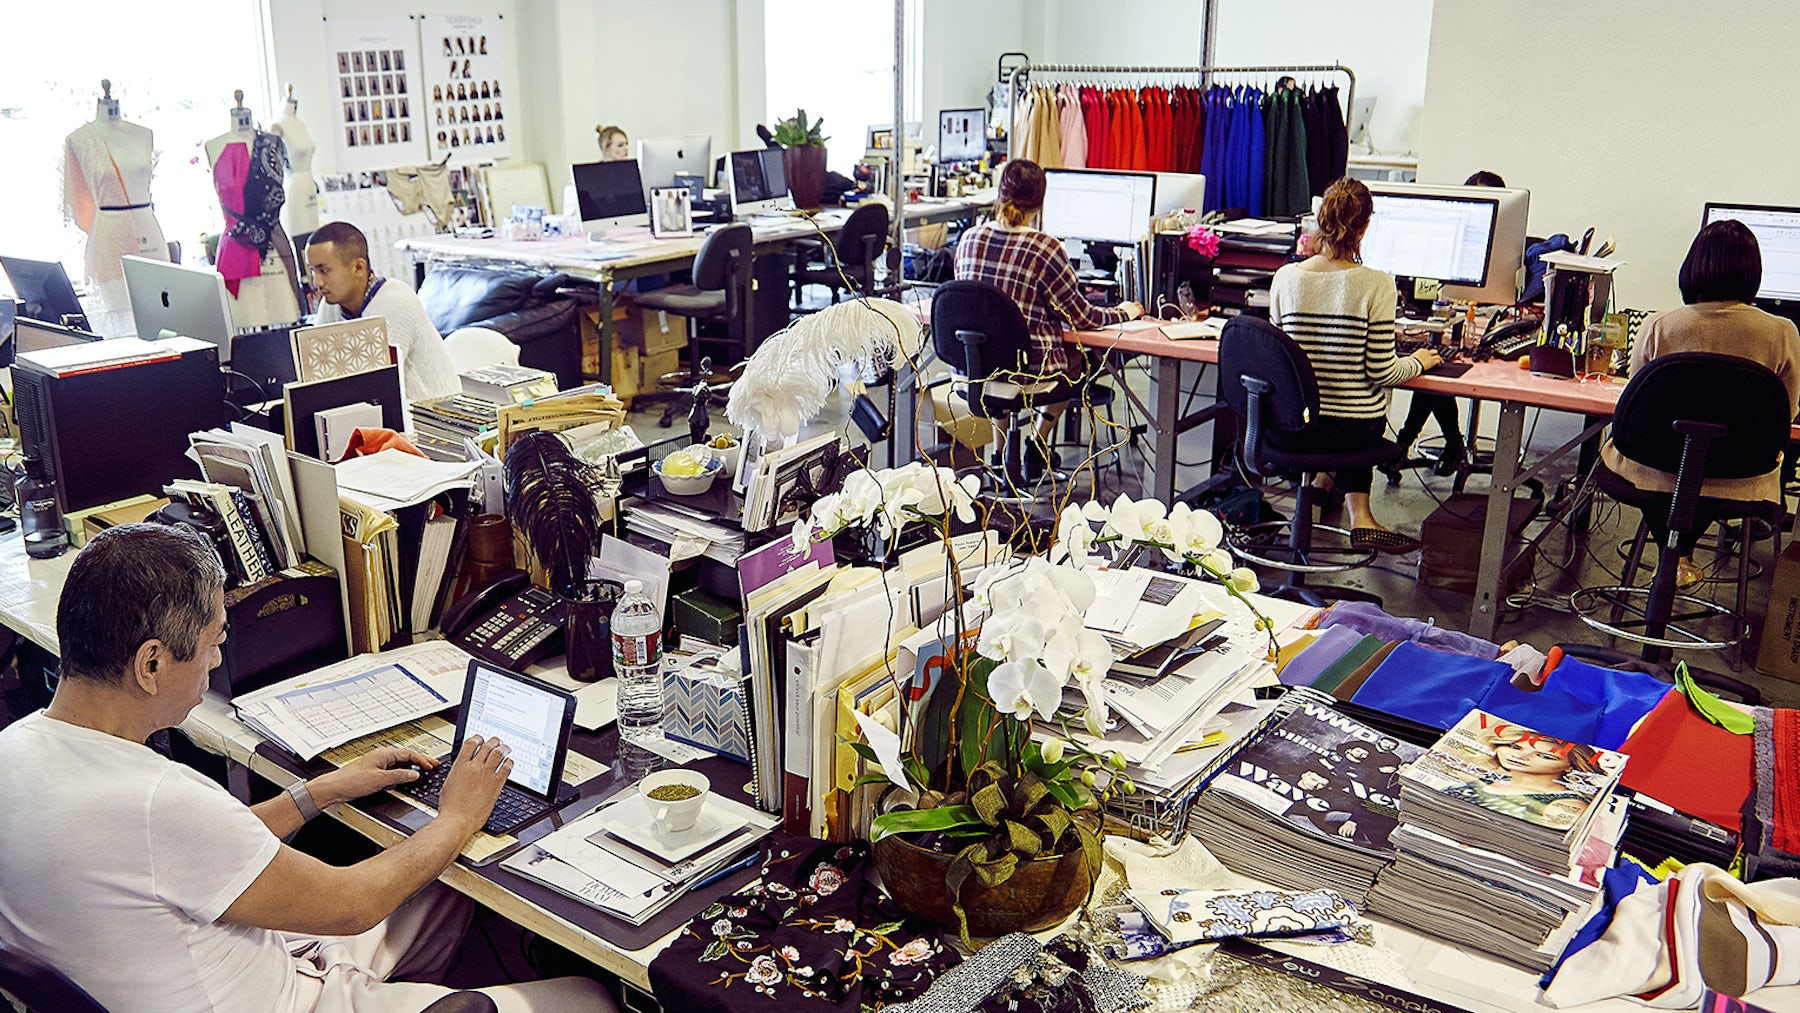 Tadashi Shoji's open plan LA workspace | Source: Courtesy